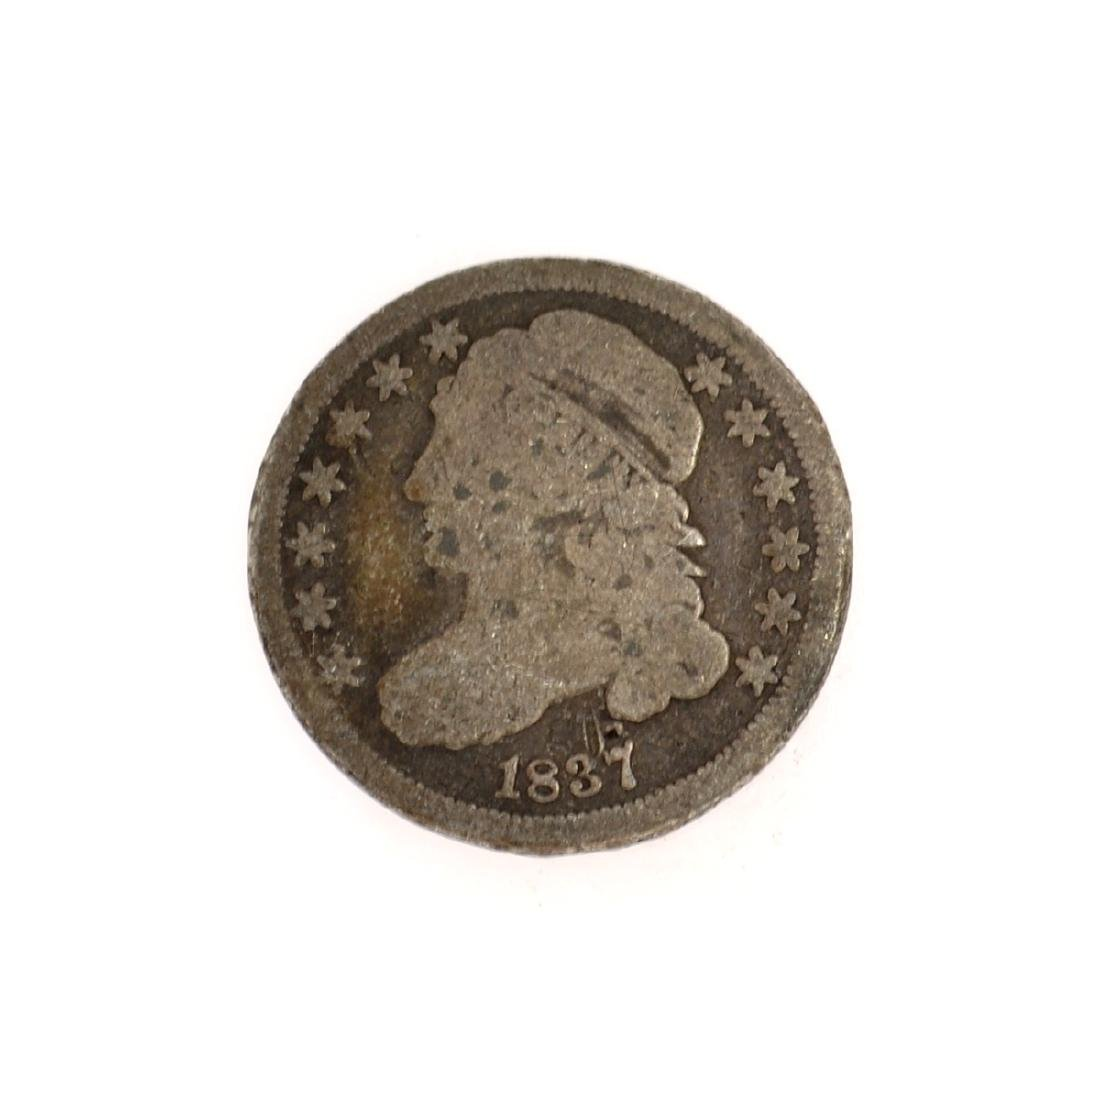 Rare 1837 Capped Bust Dime Coin